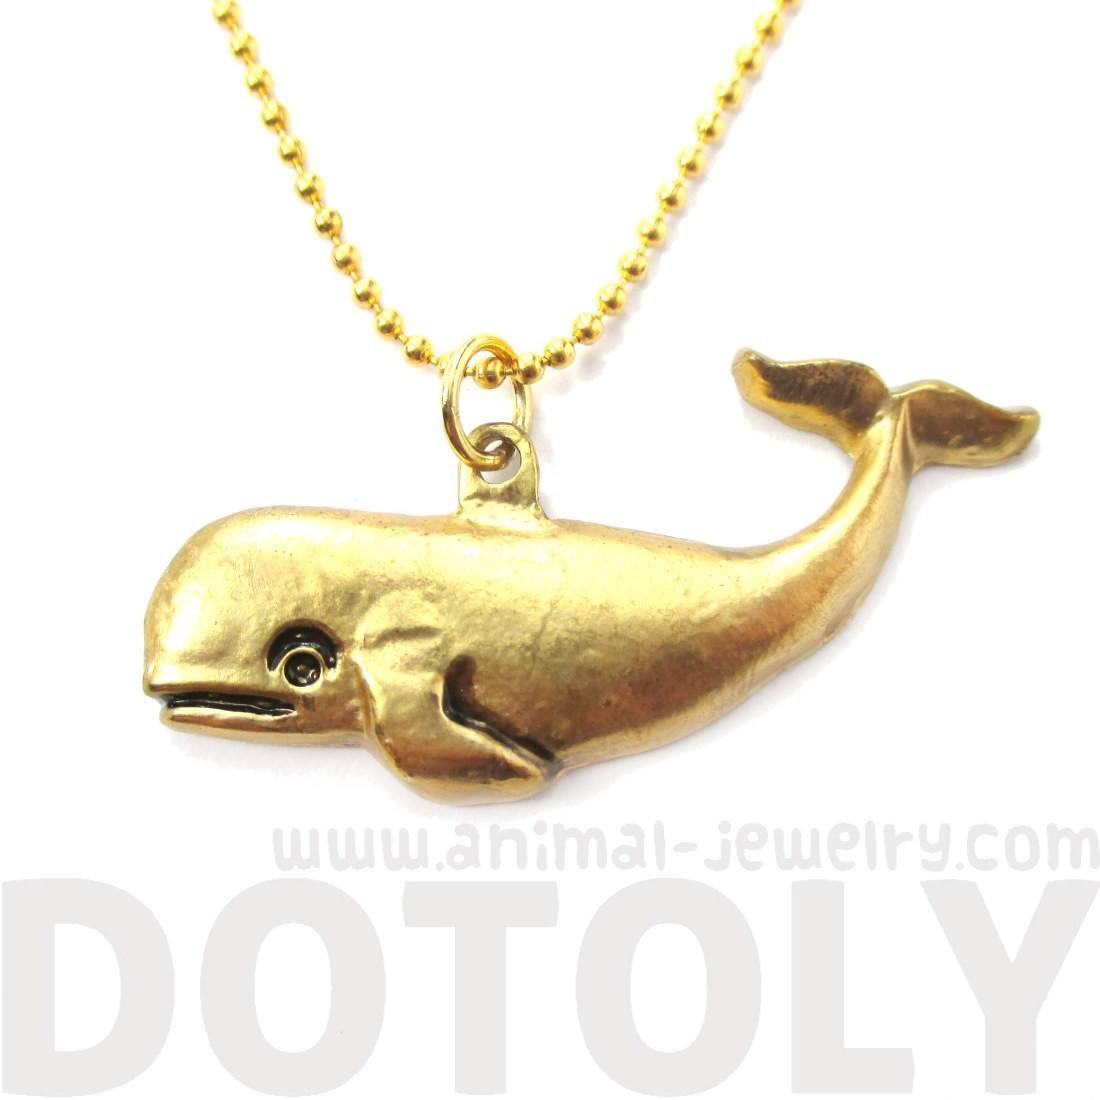 Antique Whale Shaped Sea Creature Pendant Necklace | Animal Jewelry